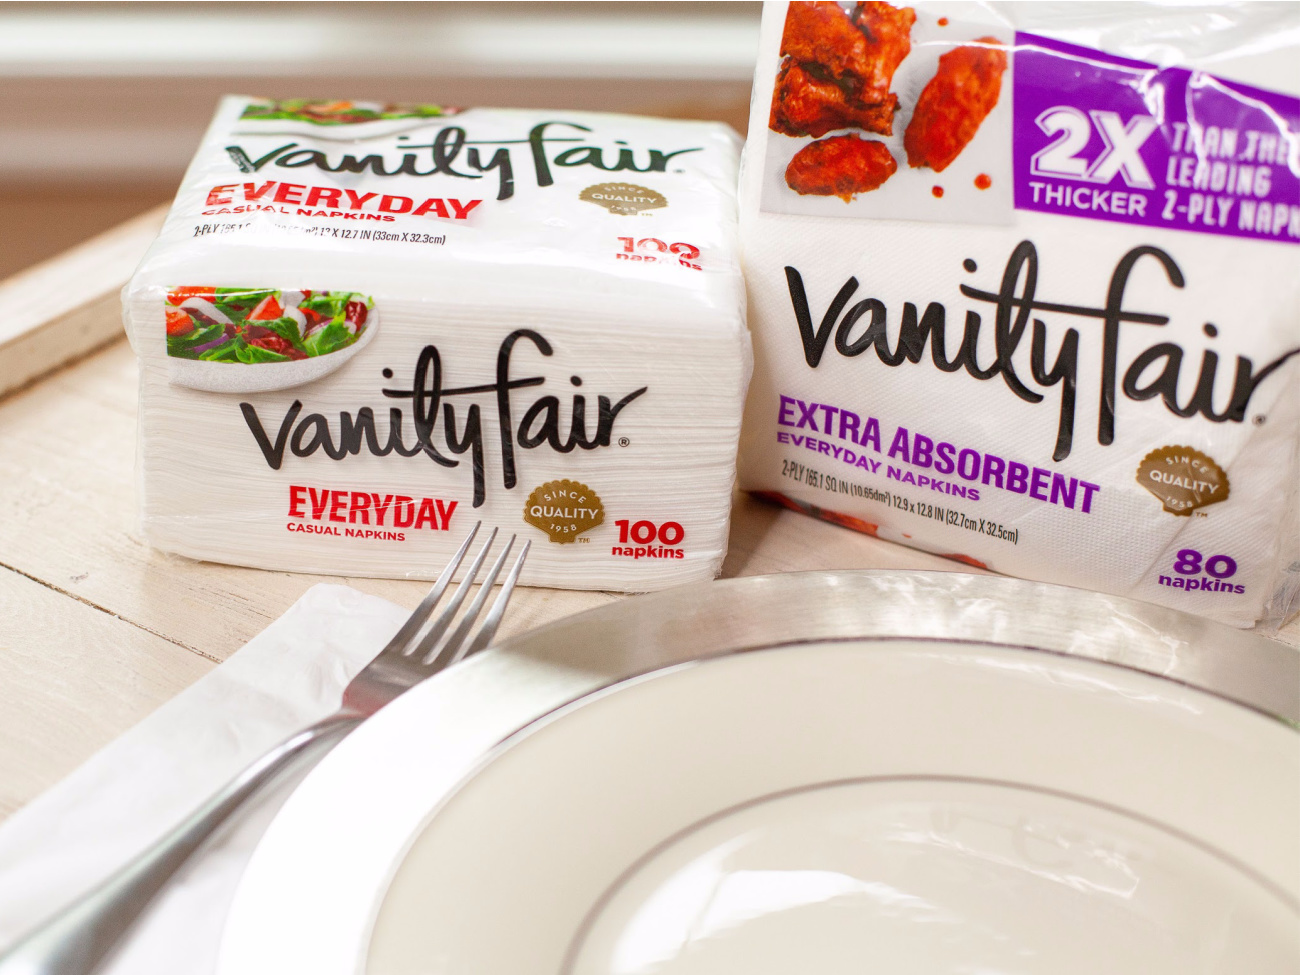 Stock Up On Vanity Fair Napkins - As Low As $1 Per Pack on I Heart Publix